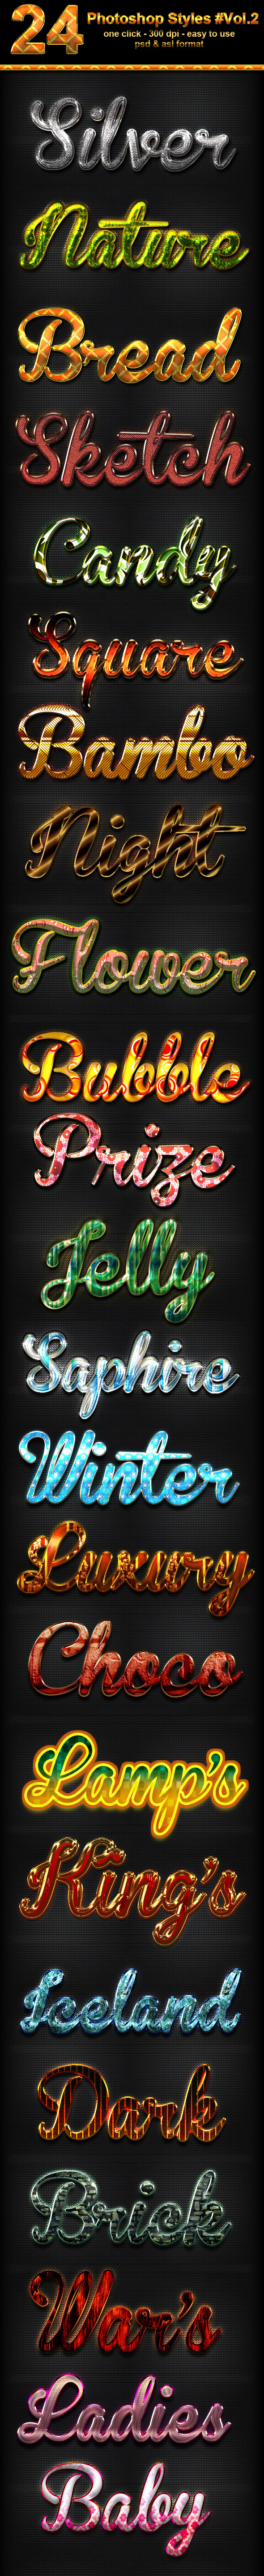 24 Photoshop Text Effect Styles Vol 2 - Text Effects Styles